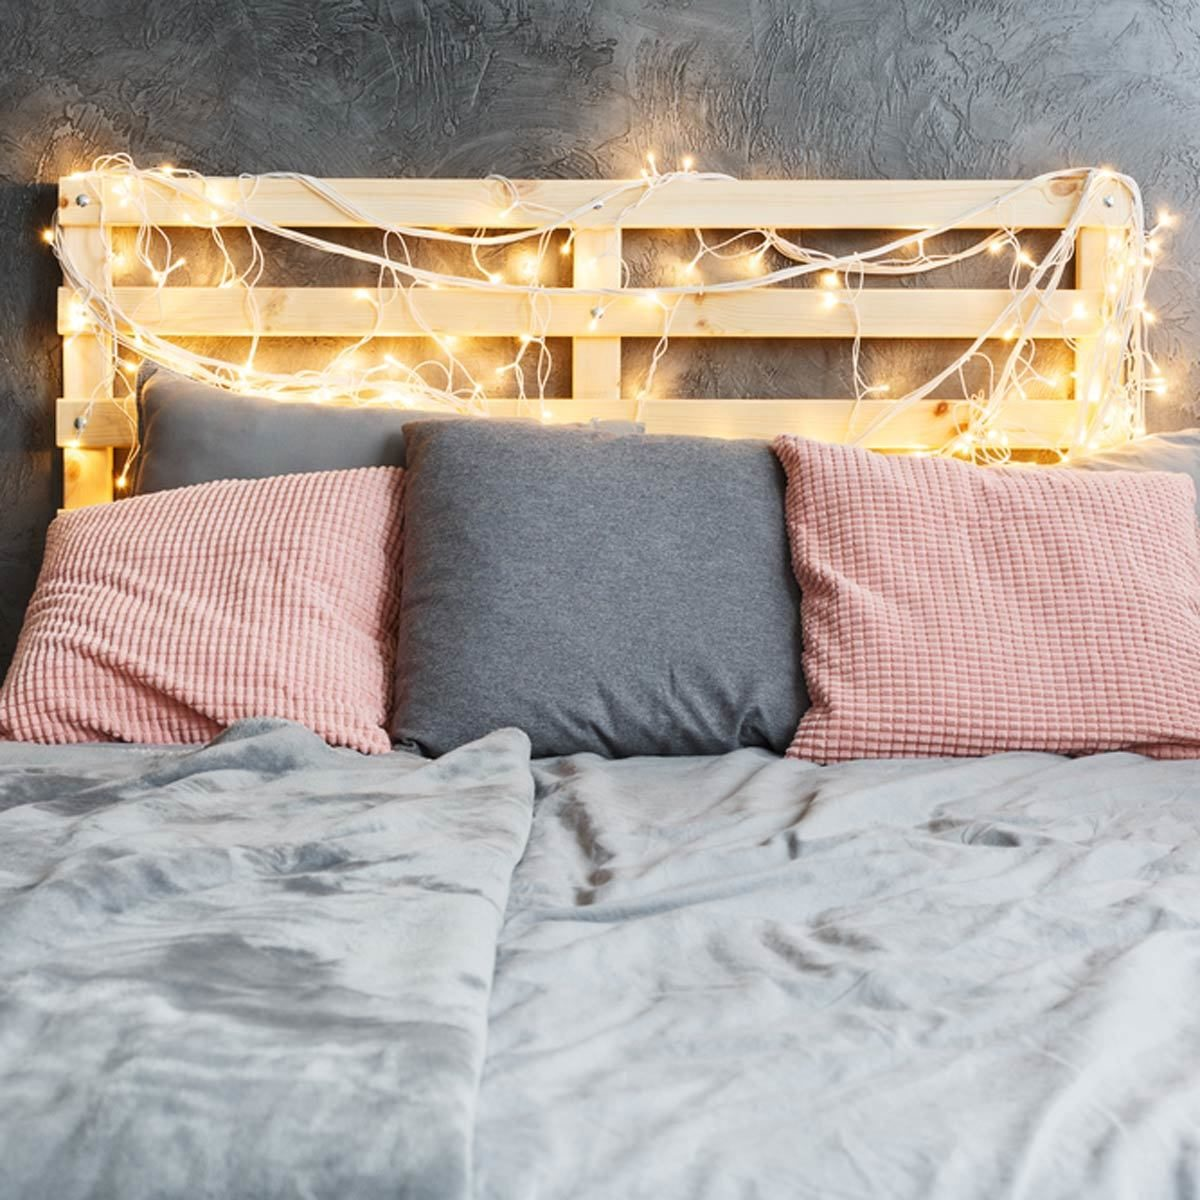 10 Things You Shouldnt Make With Pallets The Family Handyman